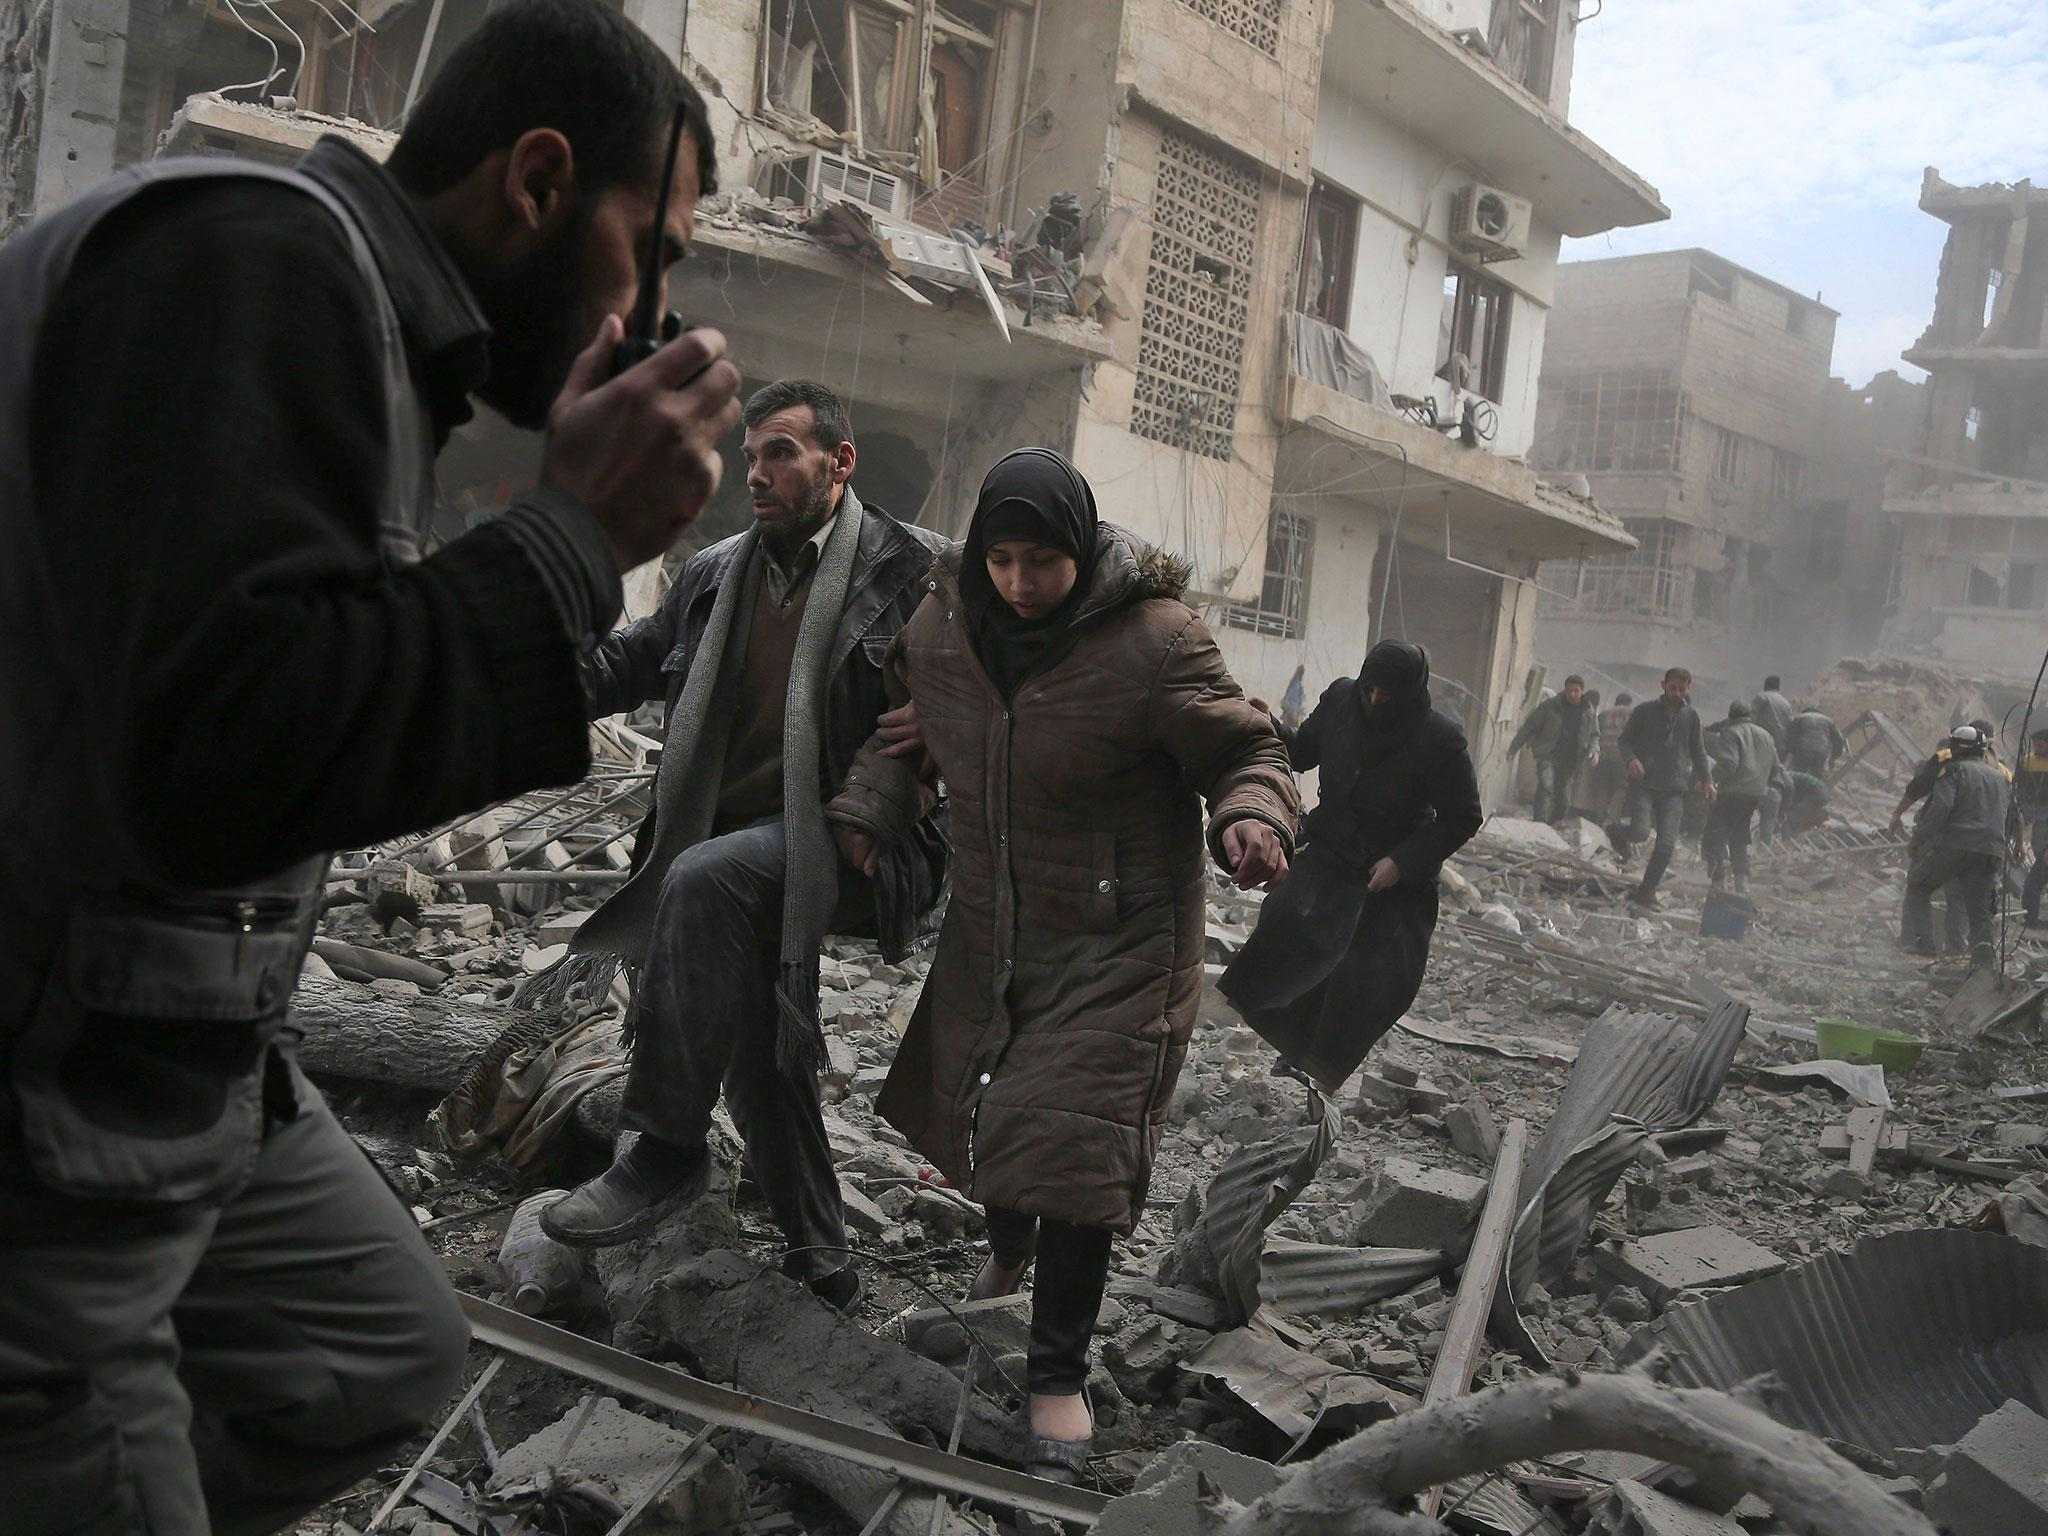 Syria: Bombs rain on Eastern Ghouta for third day as death toll rises above 200